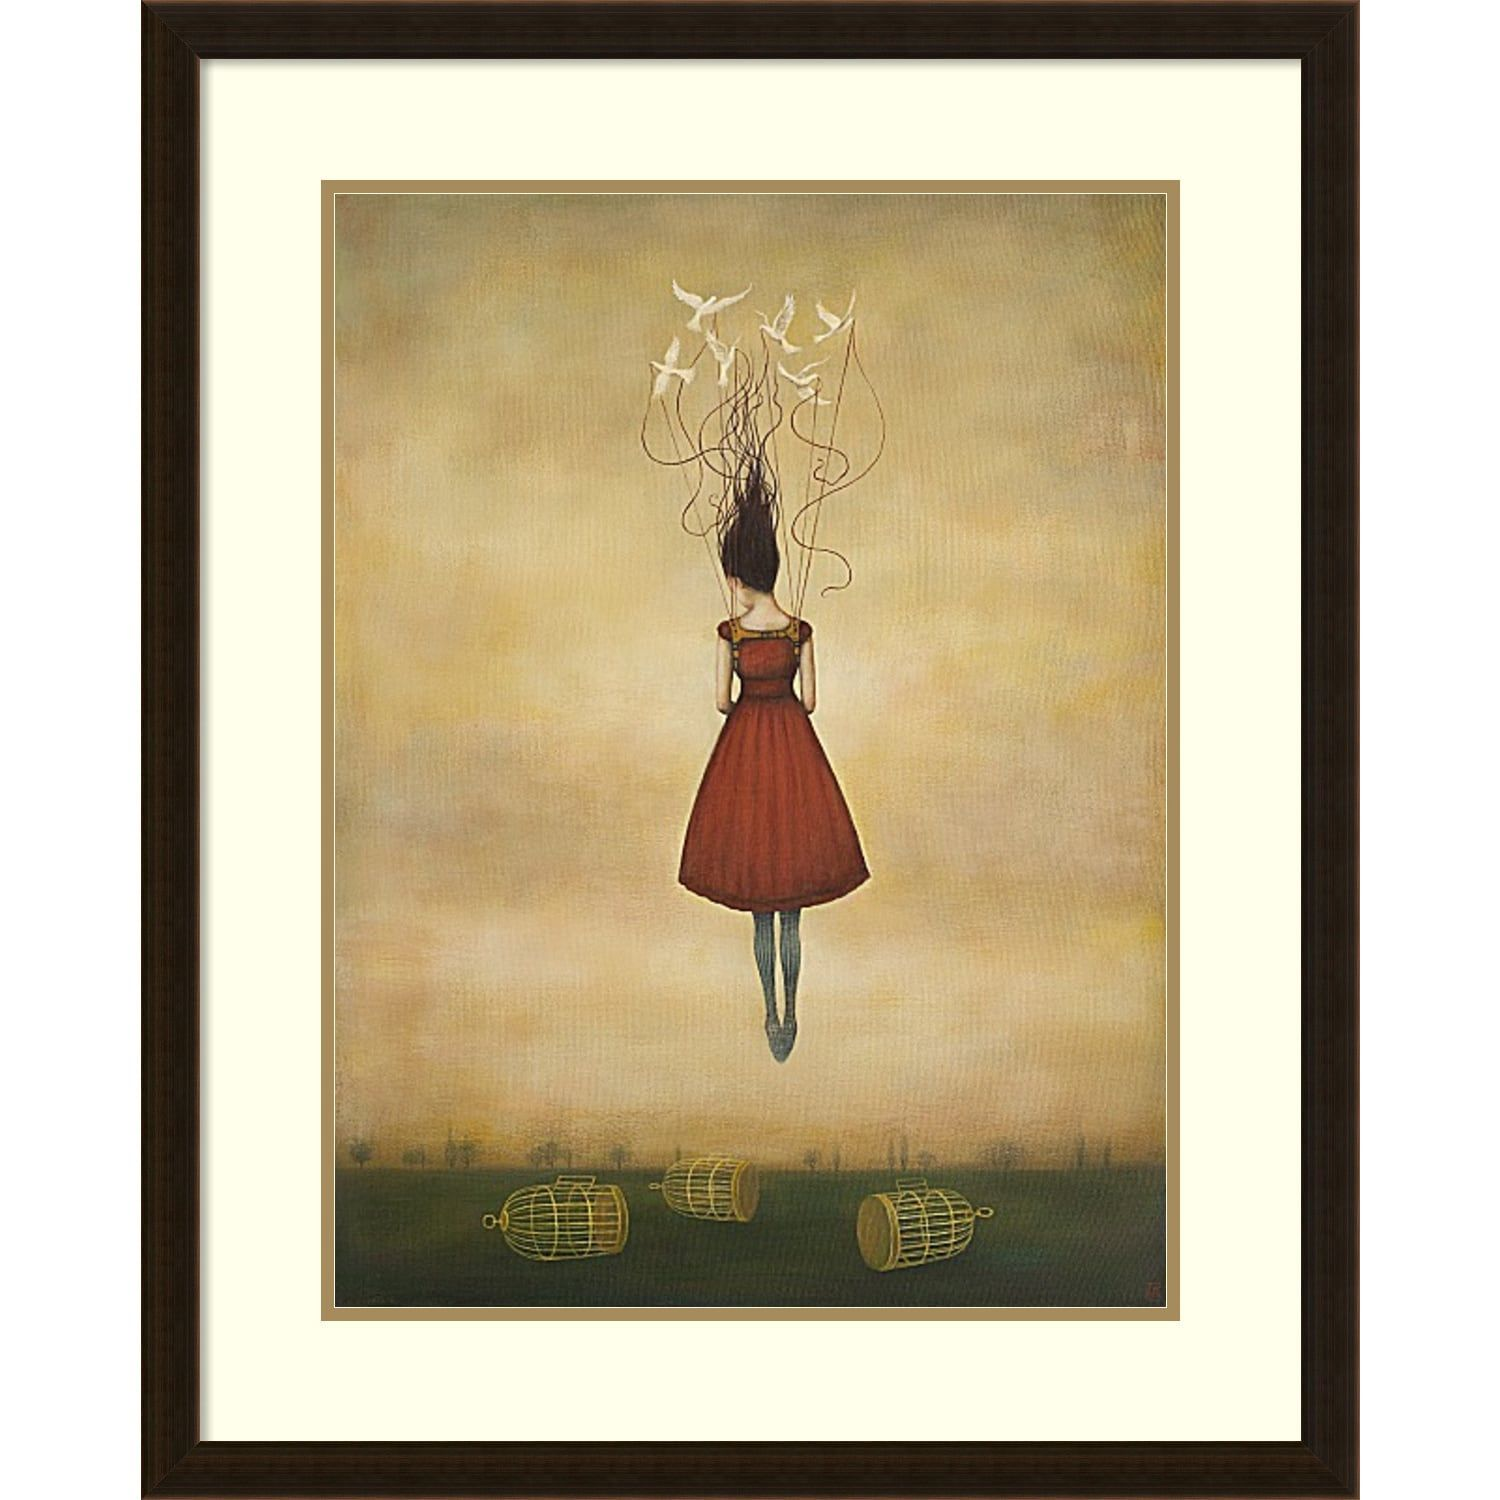 Framed Art Print \'Suspension of Disbelief\' by Duy Huynh 26 x 32-inch ...